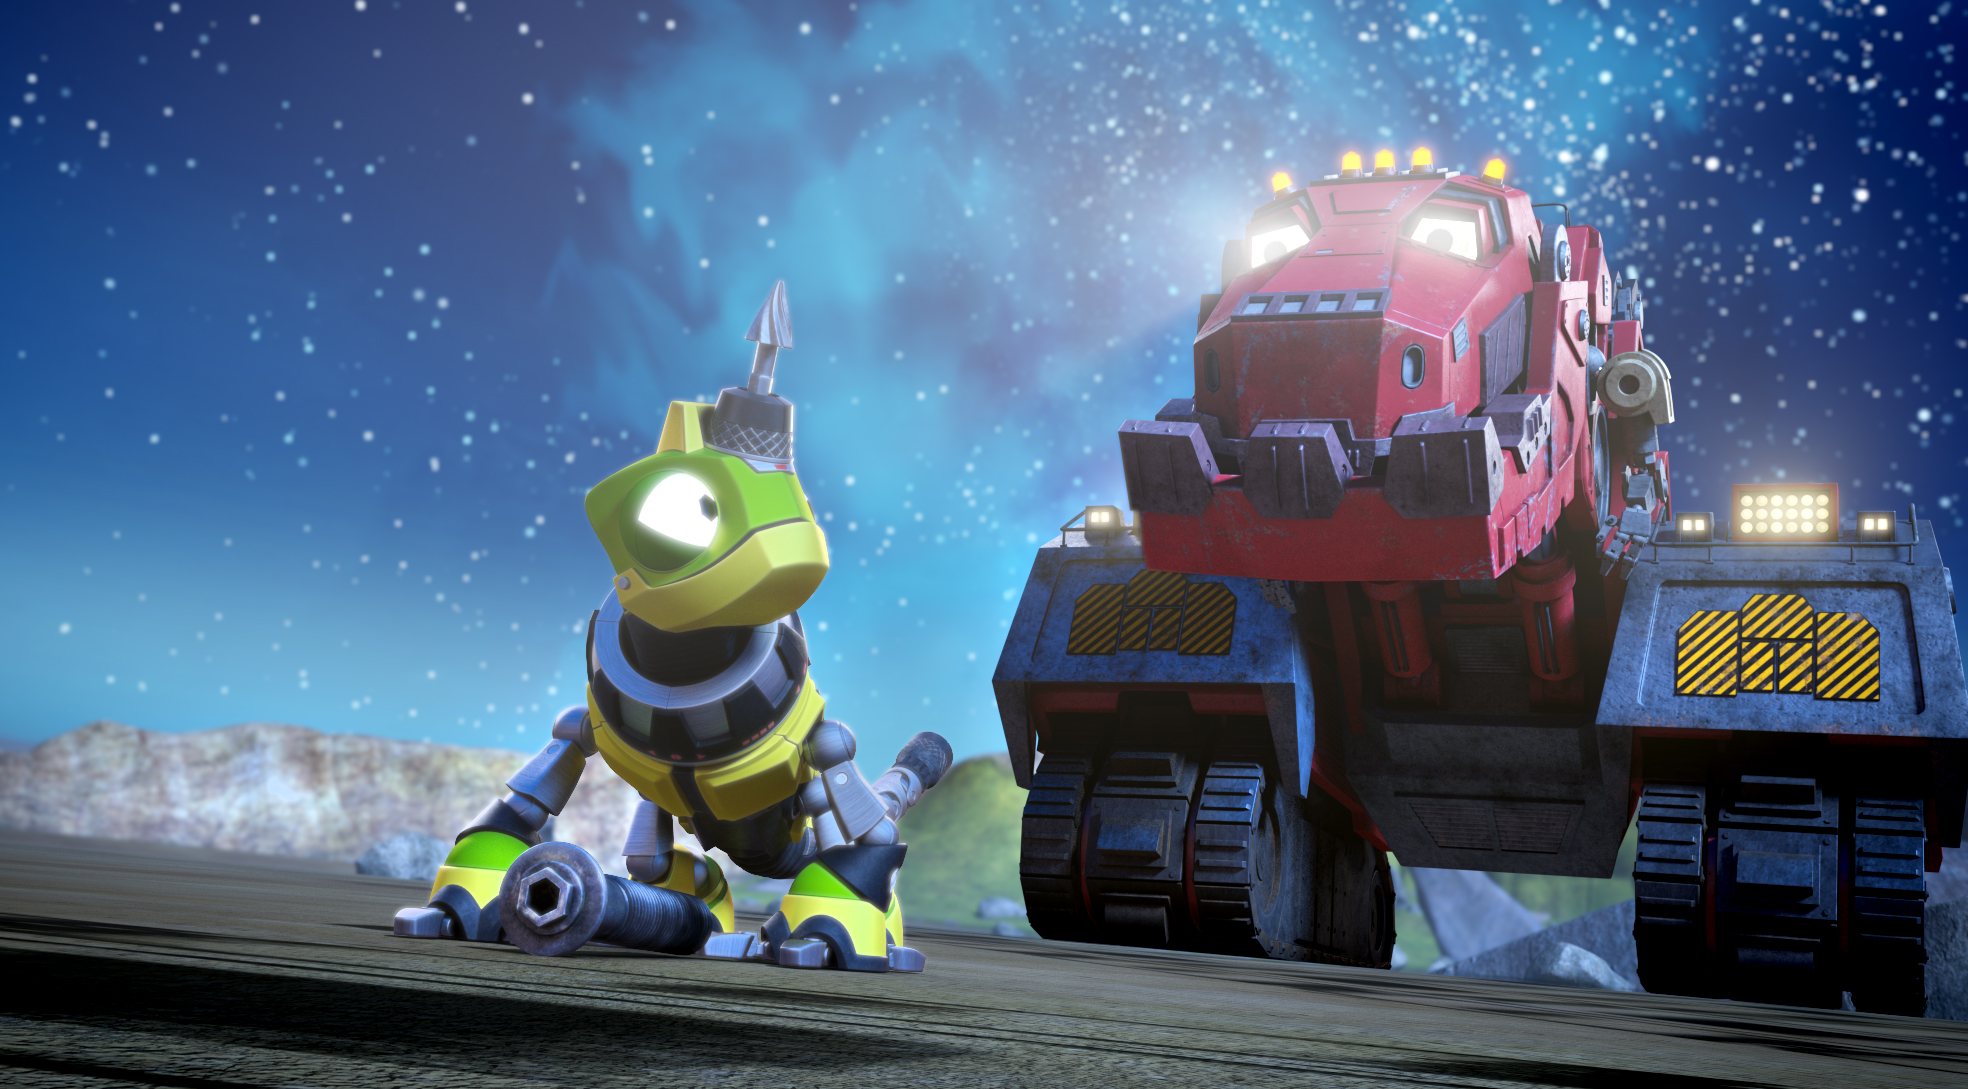 Dinotrux - a Netflix Original Series from DreamWorks Animation